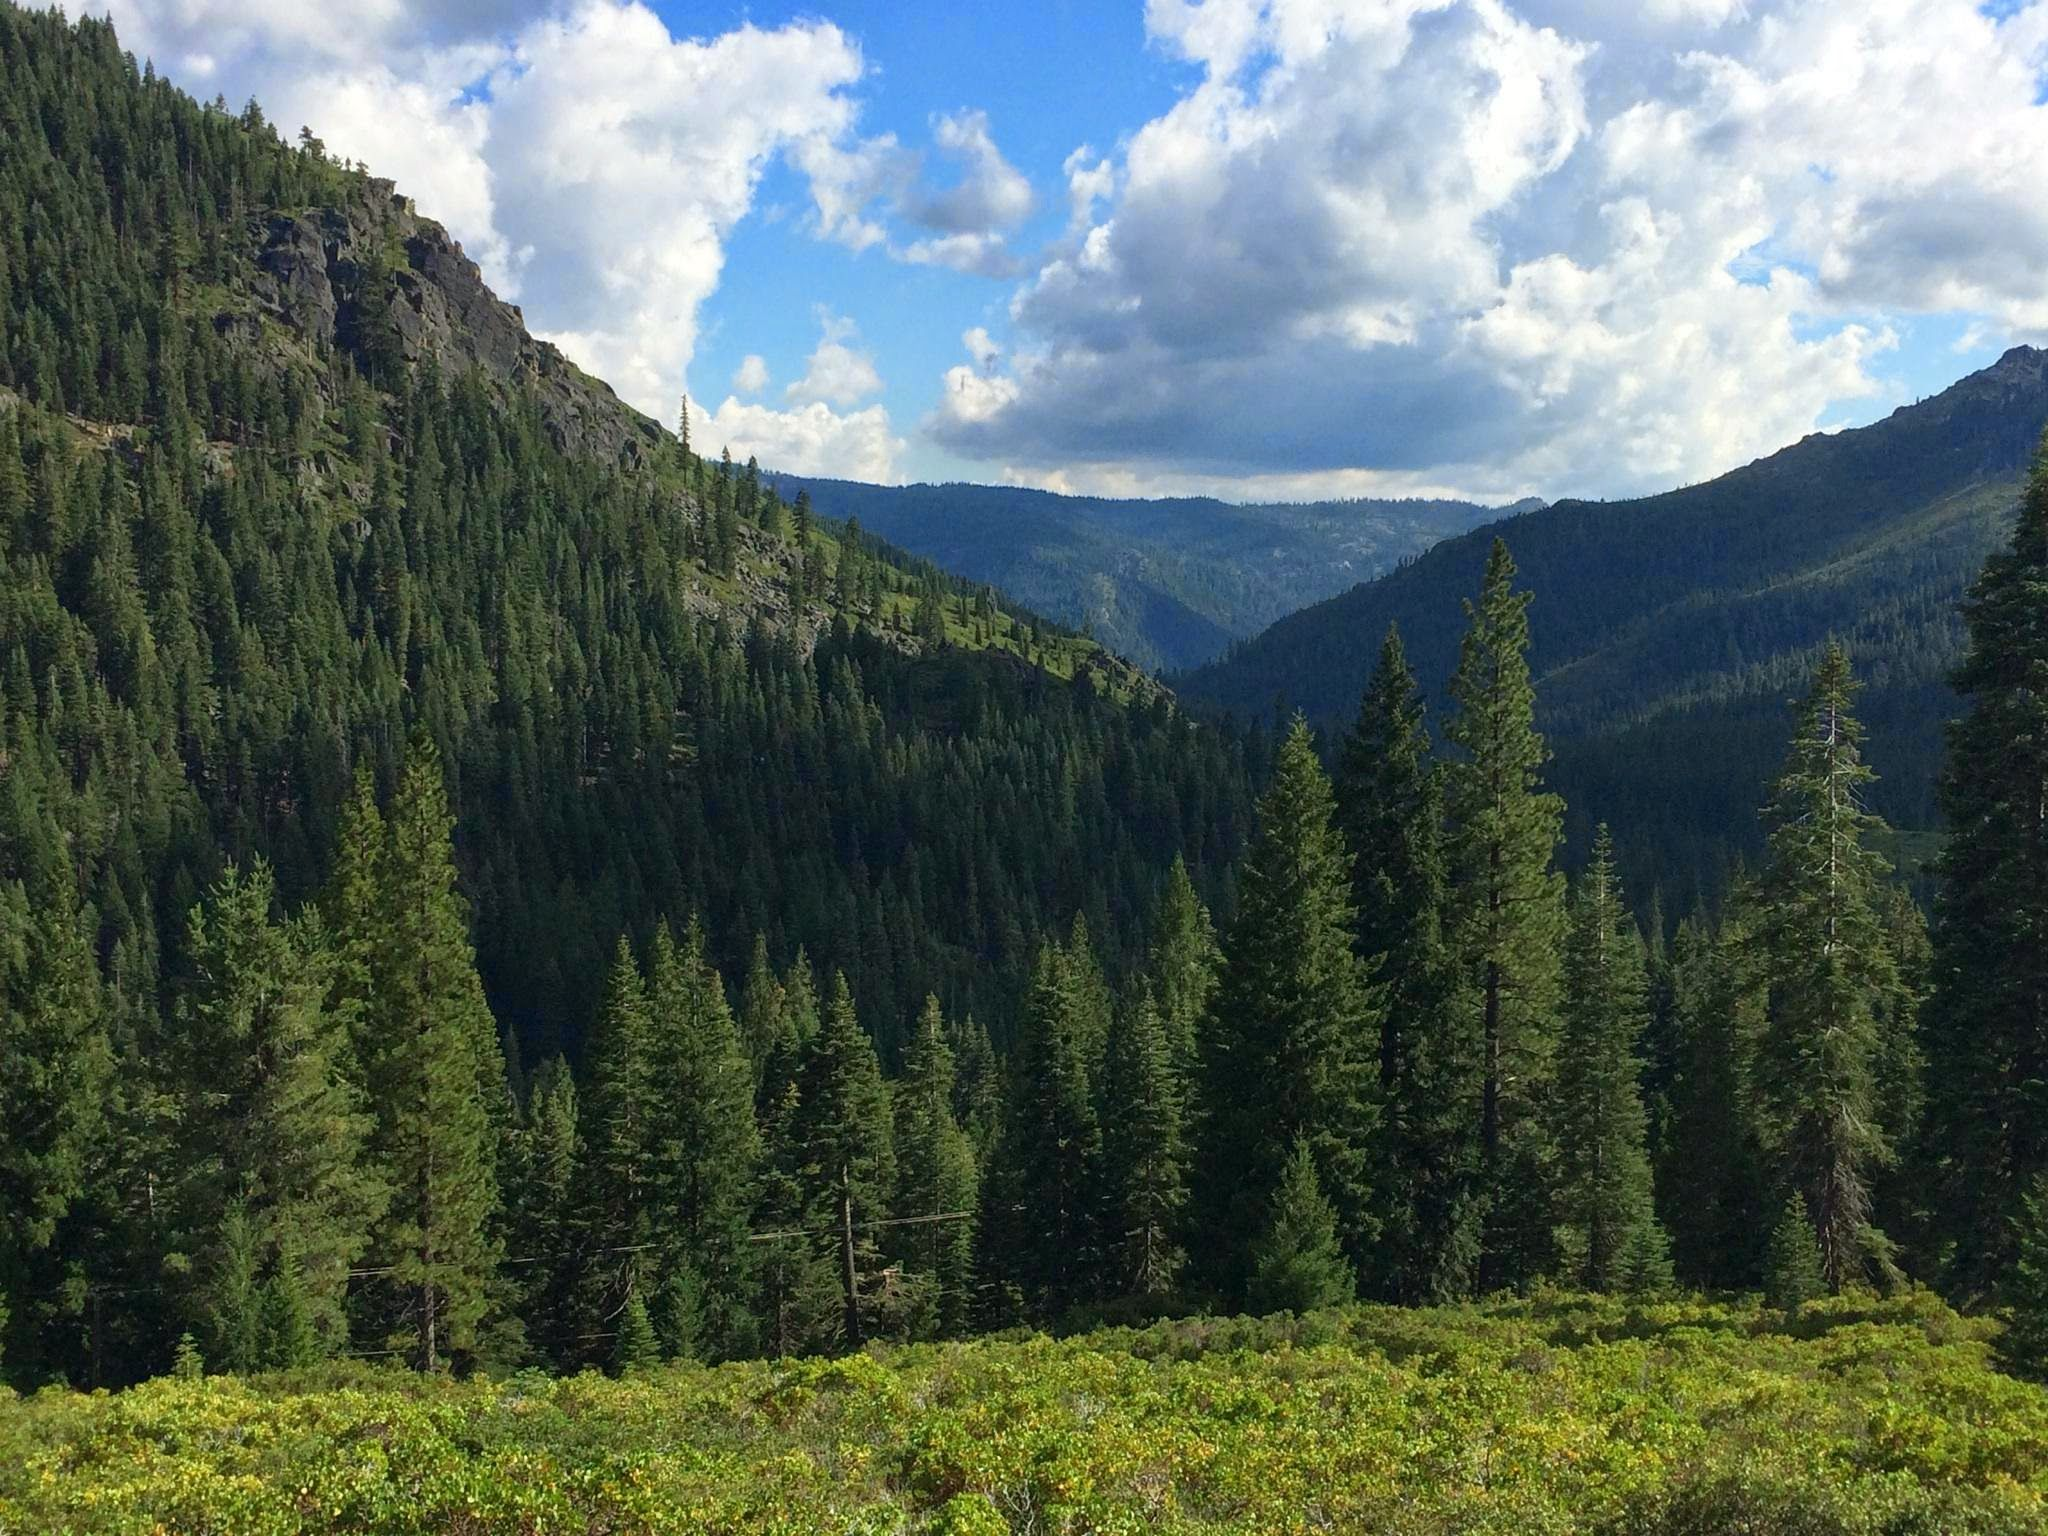 Plumas National Forest Skyline in California